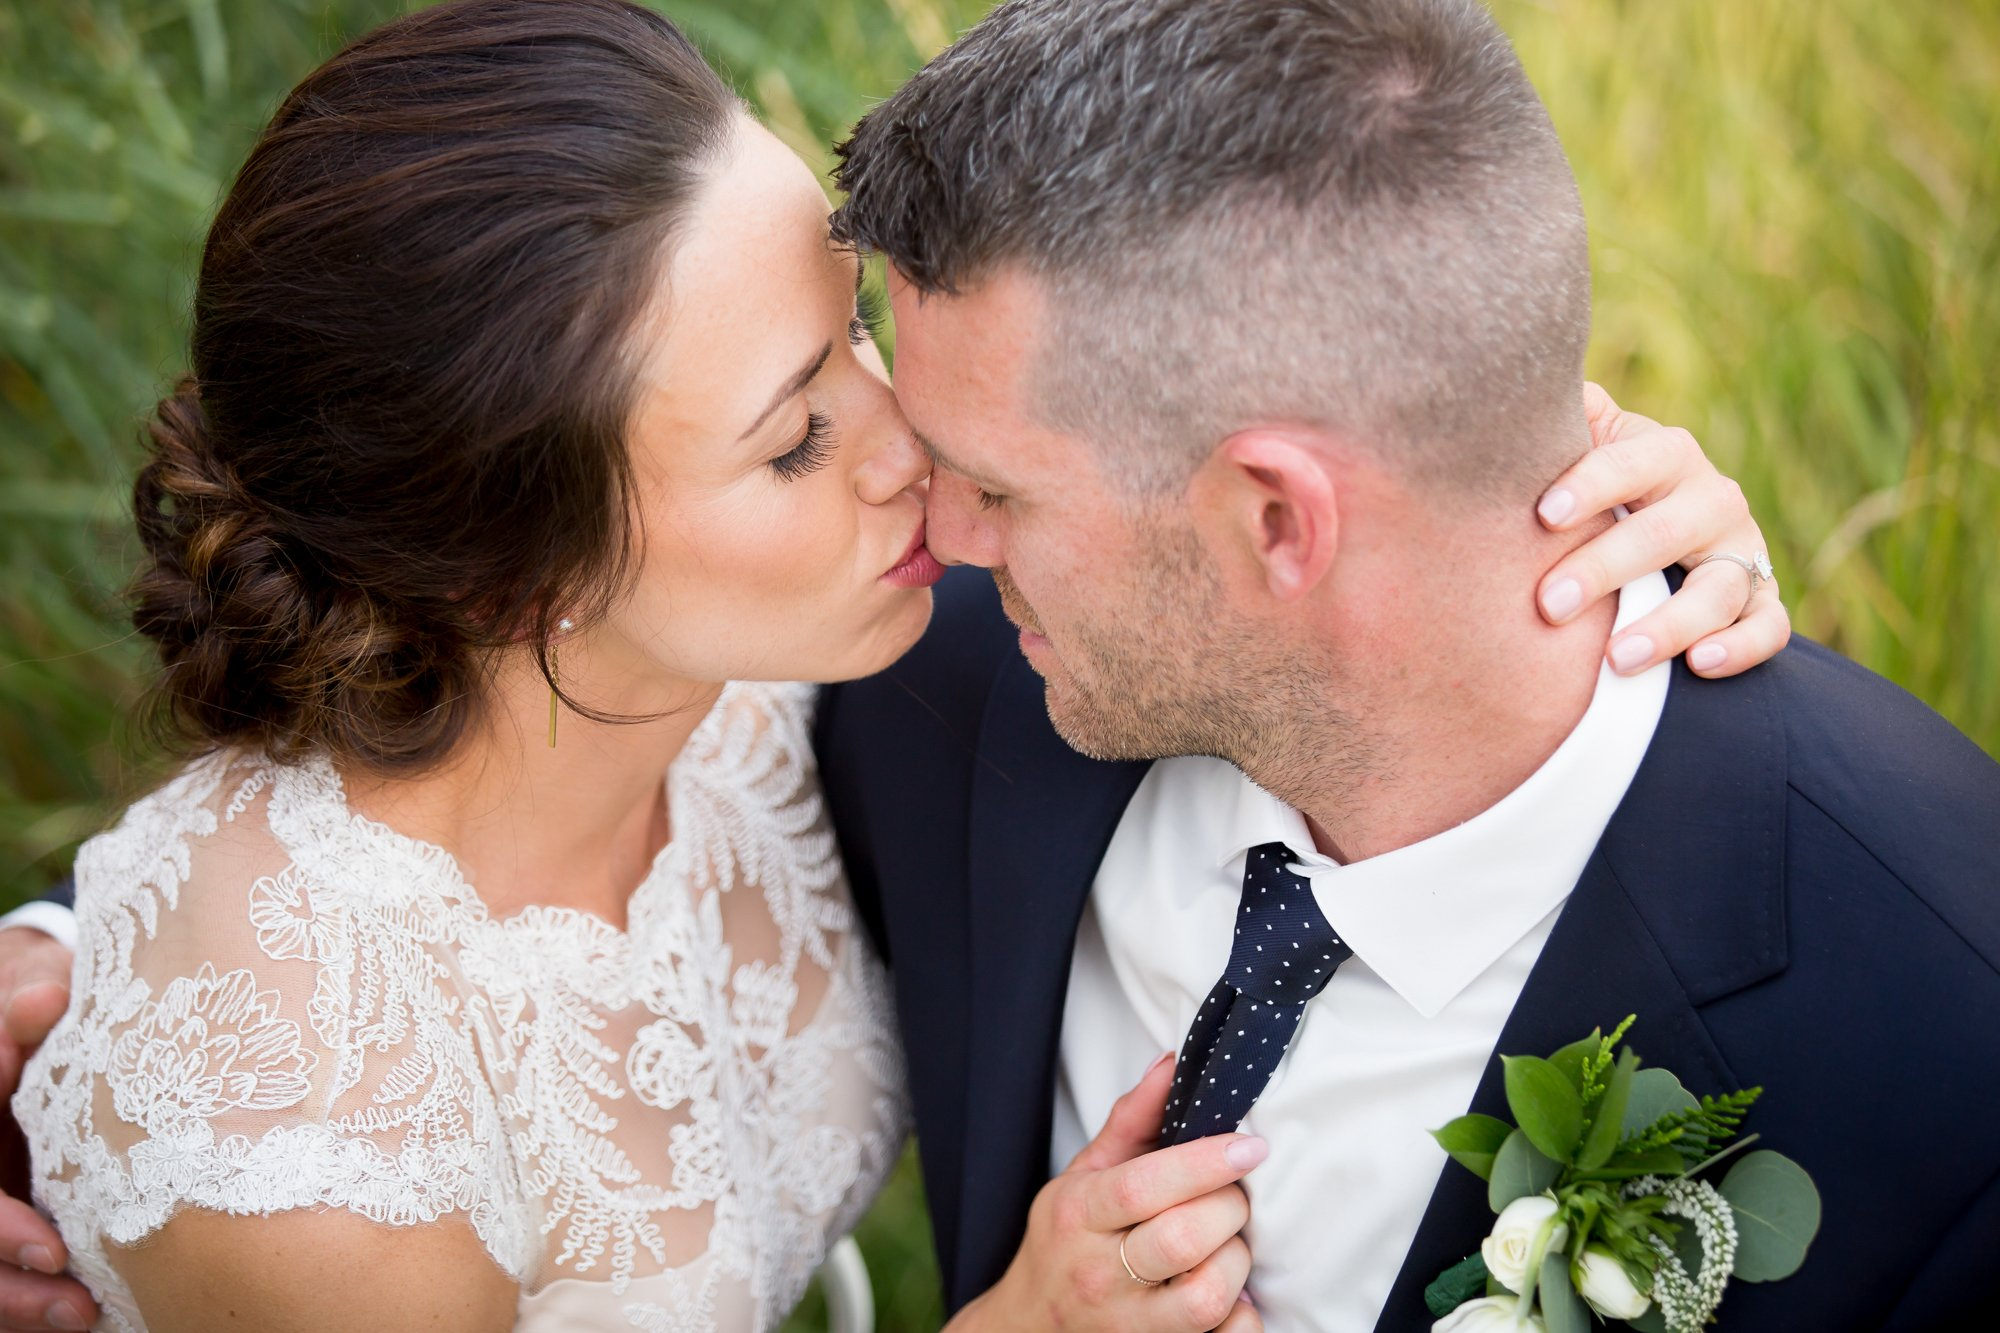 a bride kissing her groom on the nose